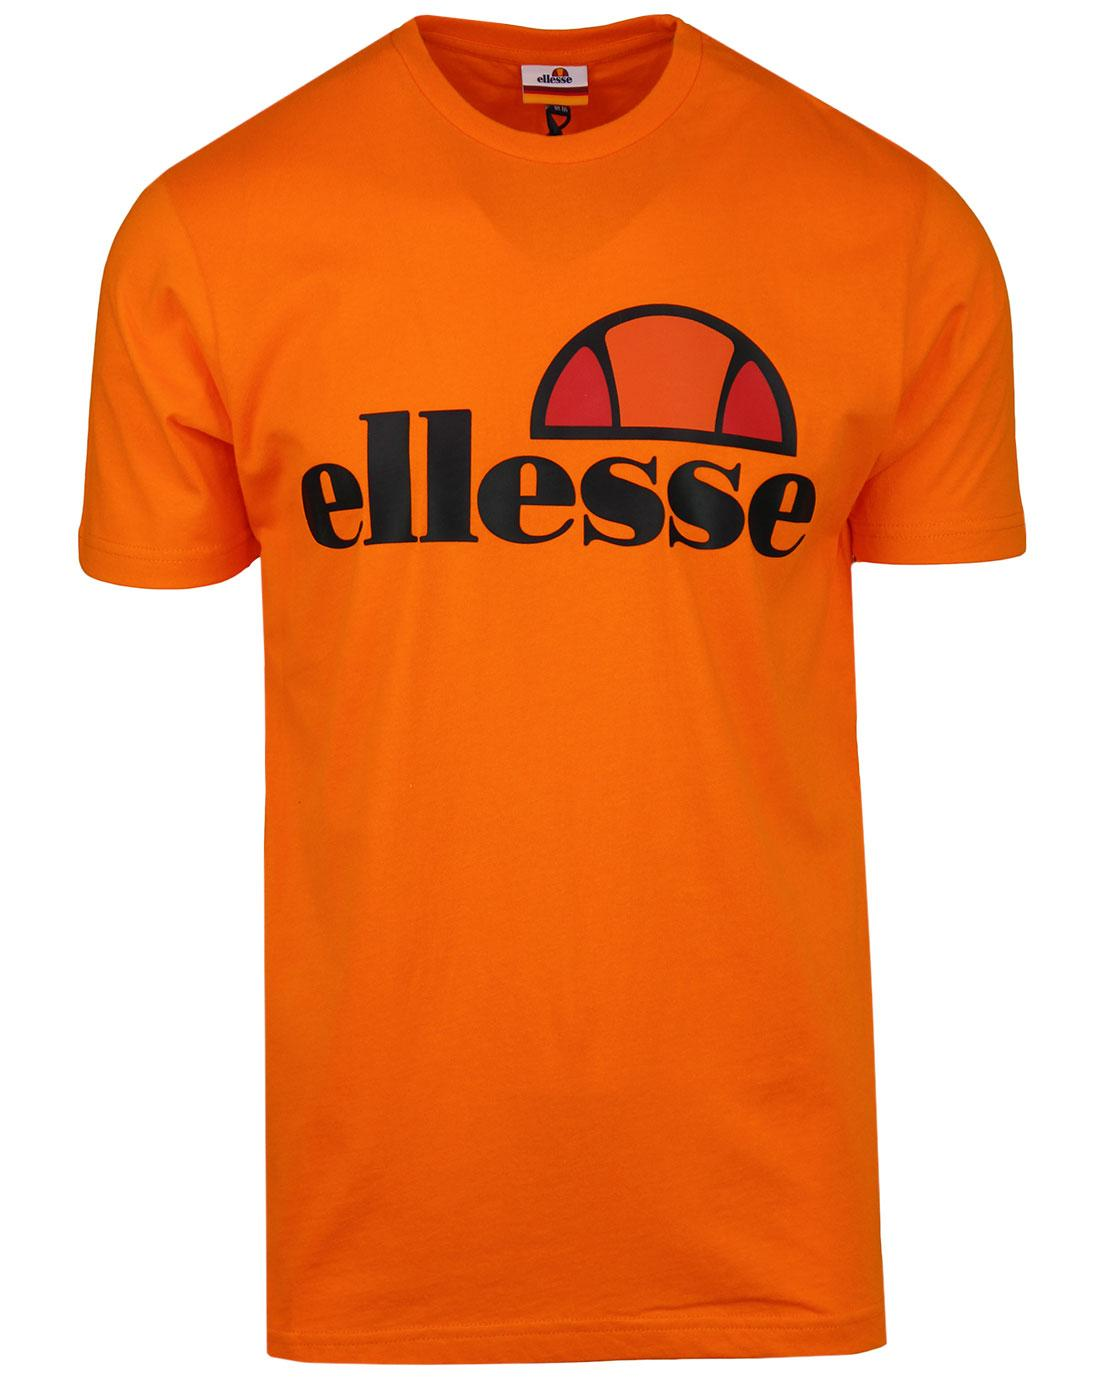 Prado ELLESSE Men's Retro 80s Logo T-shirt ORANGE